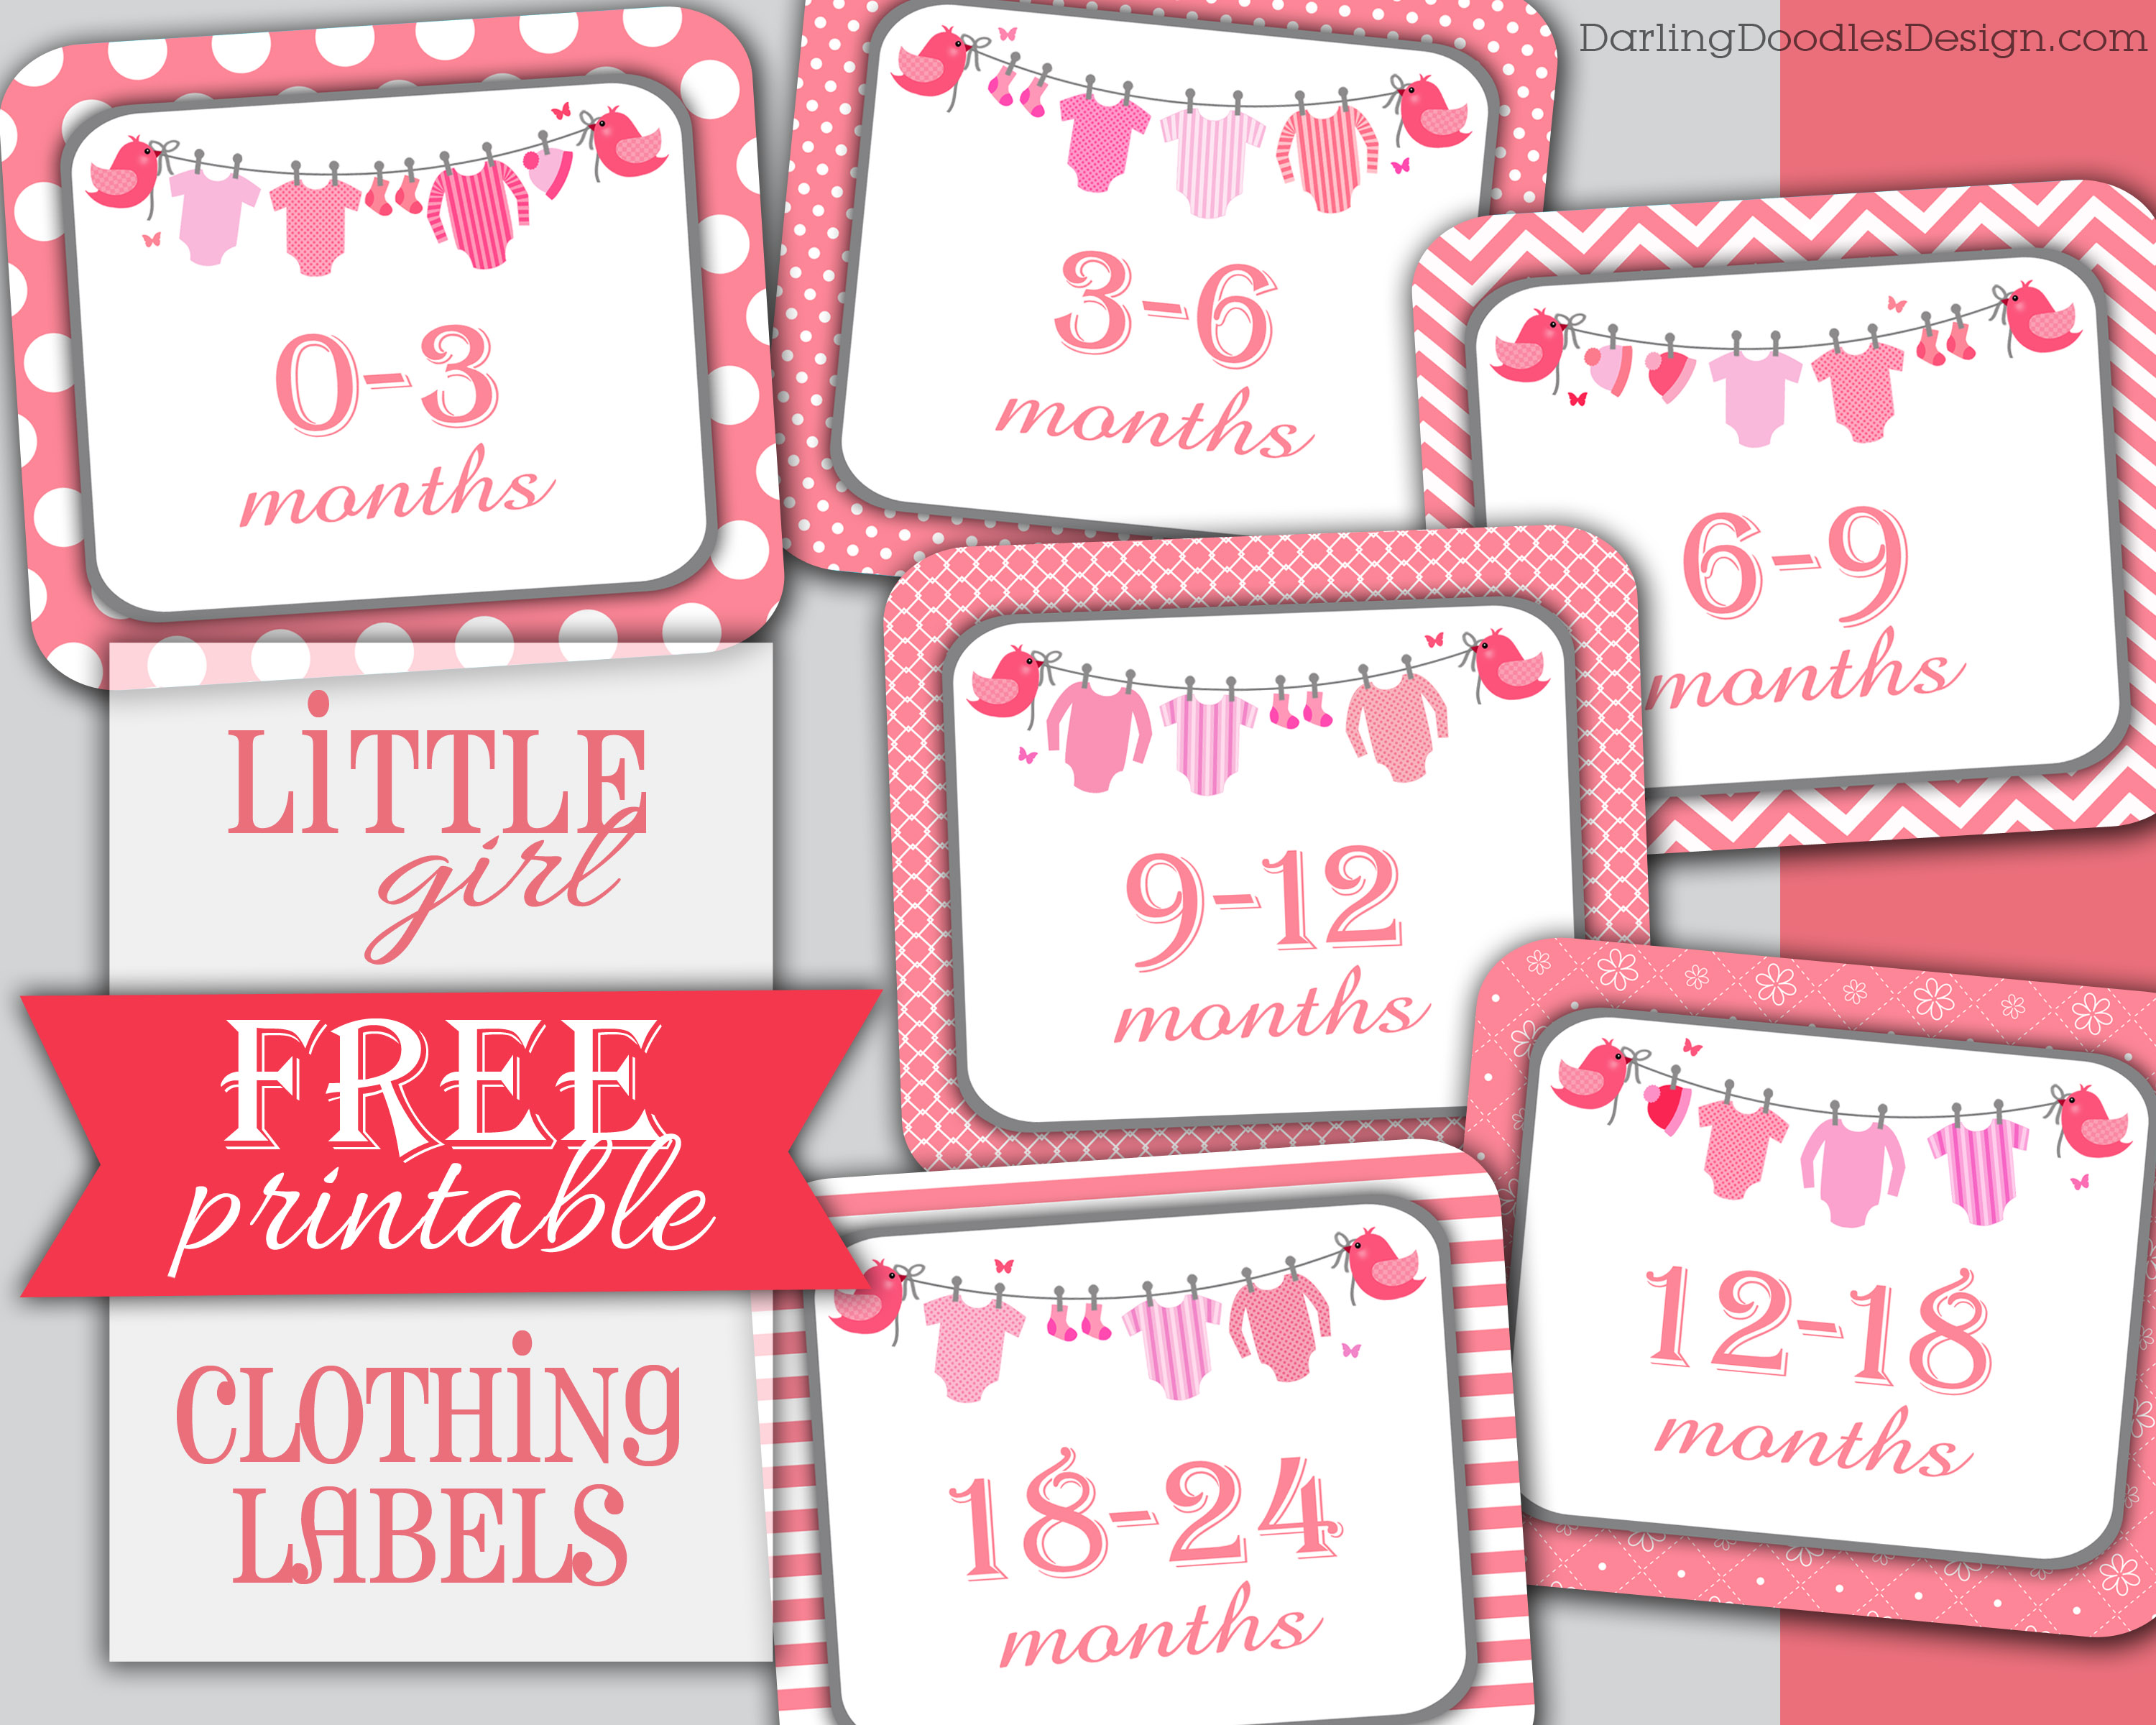 Free Printable Clothing Labels